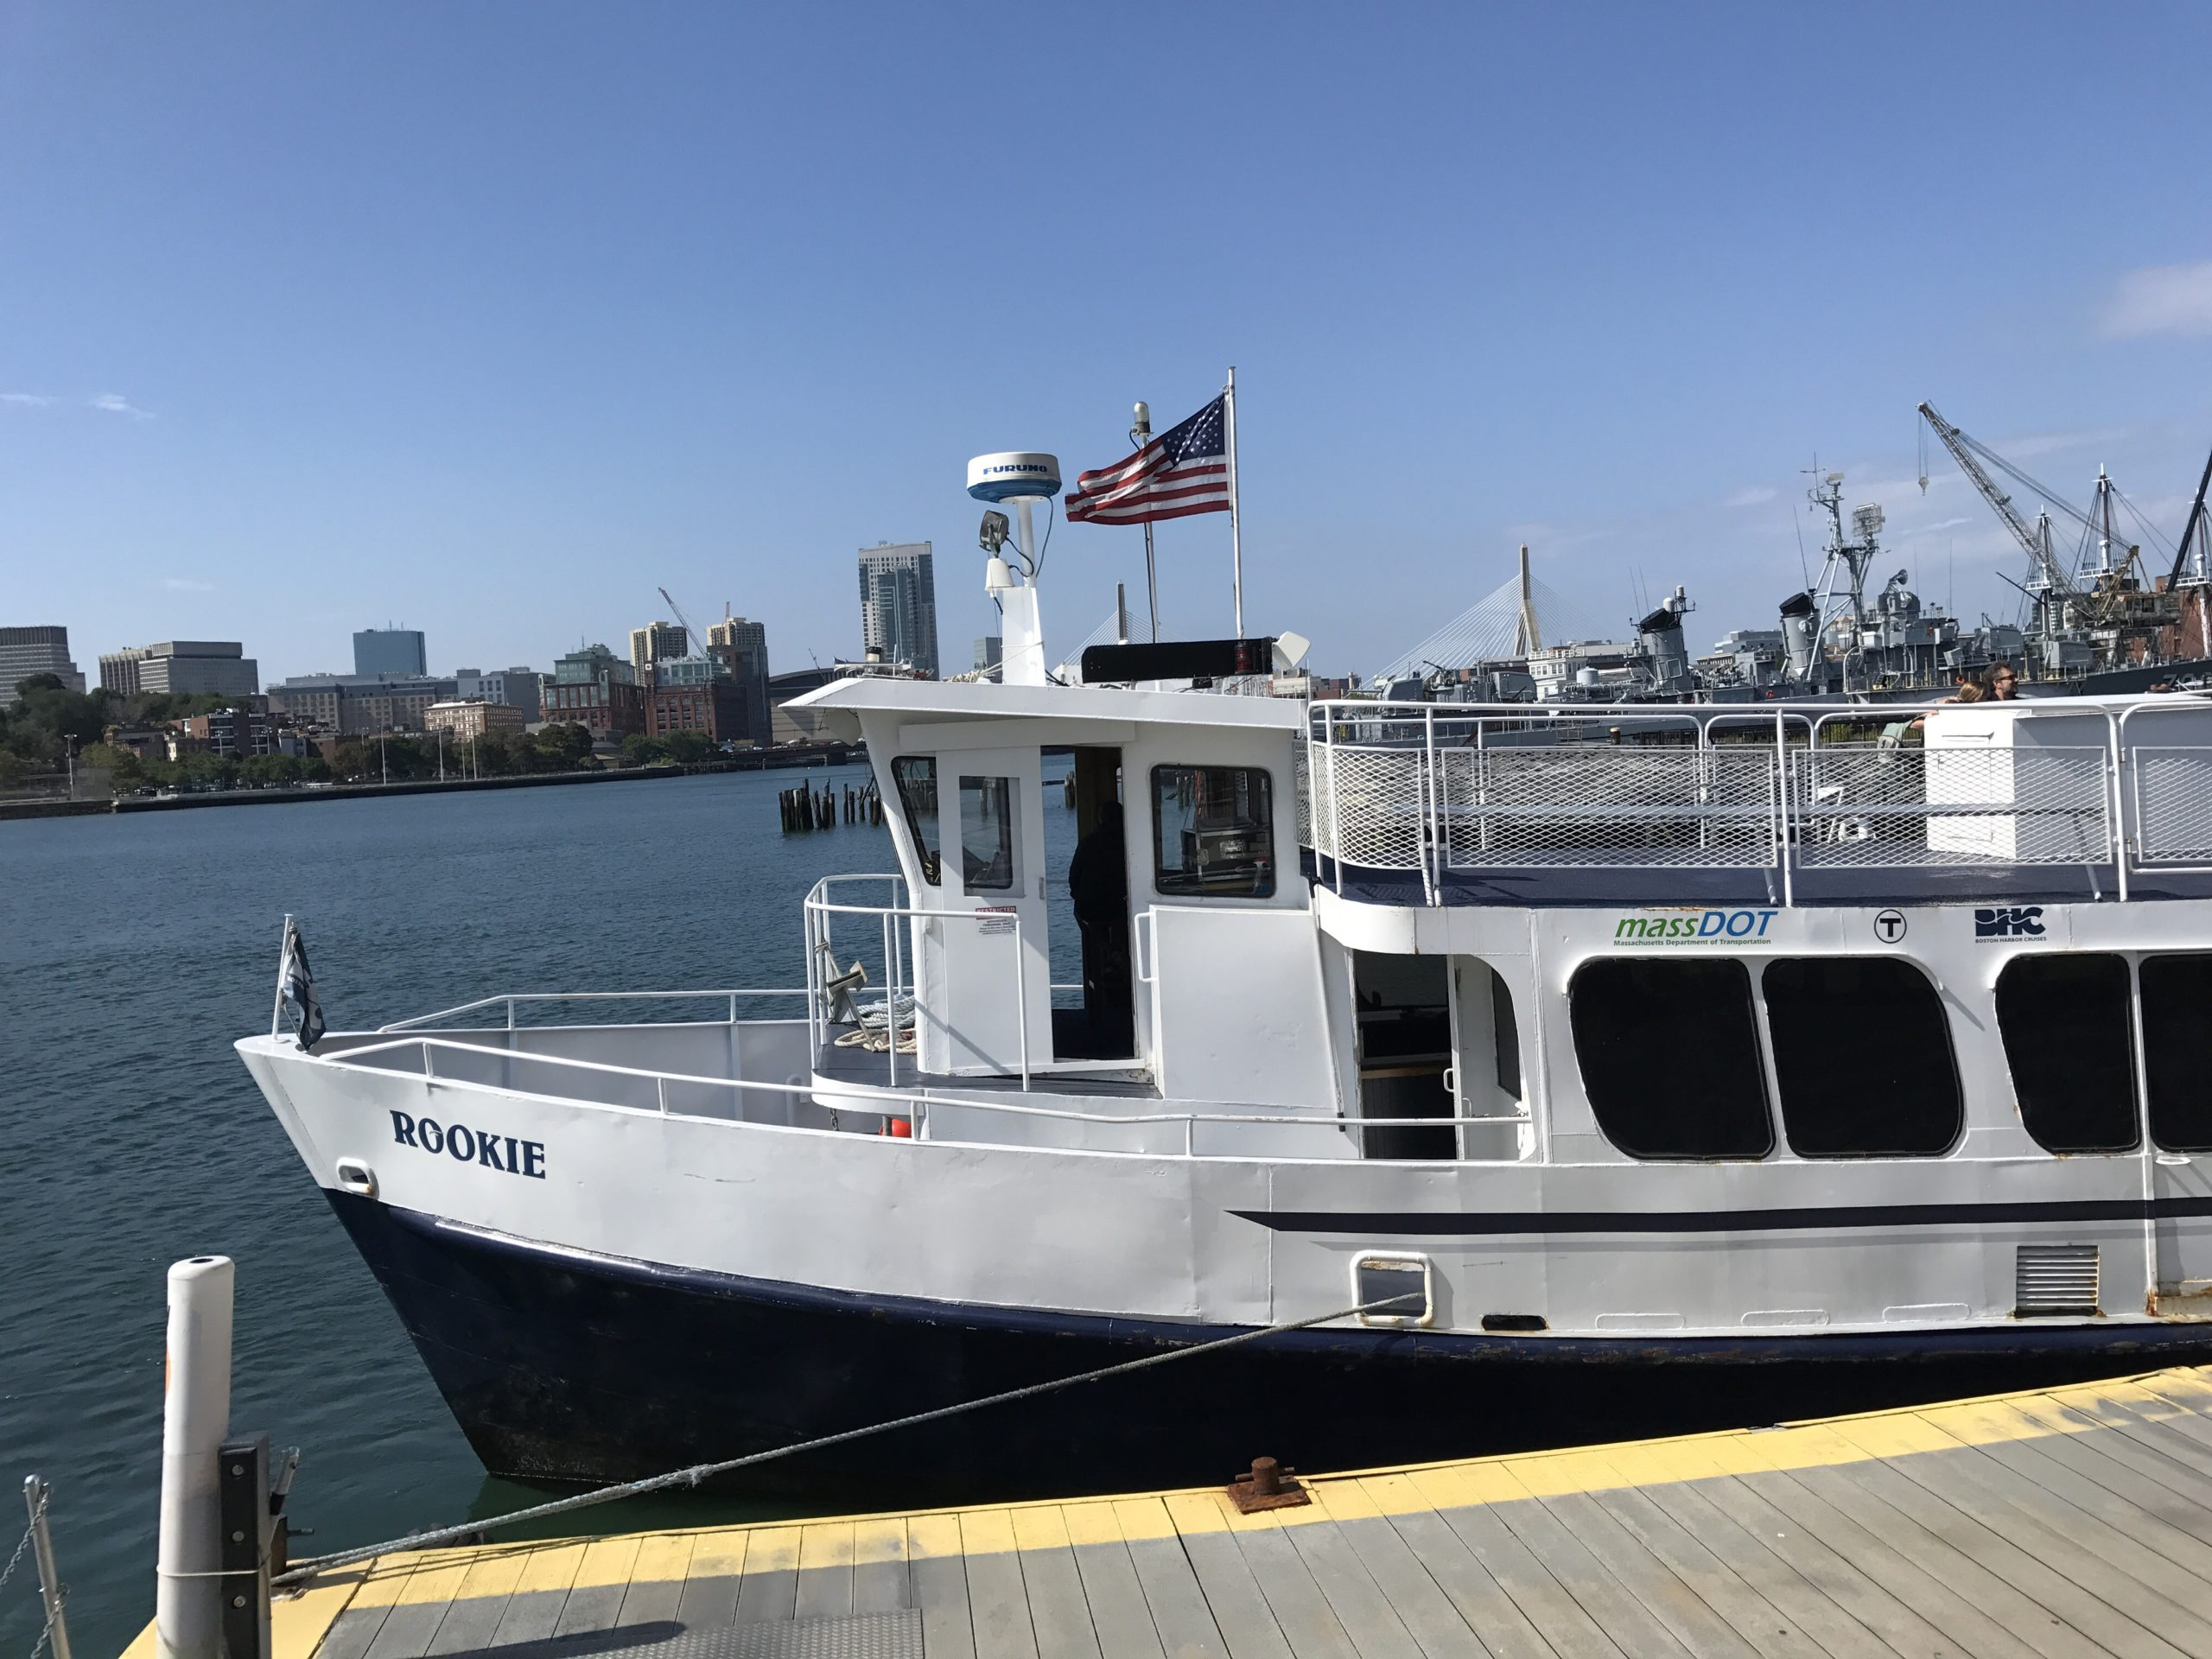 Charlestown MA Condo Apartment for sale Navy Yard Shuttle boat downtown Boston